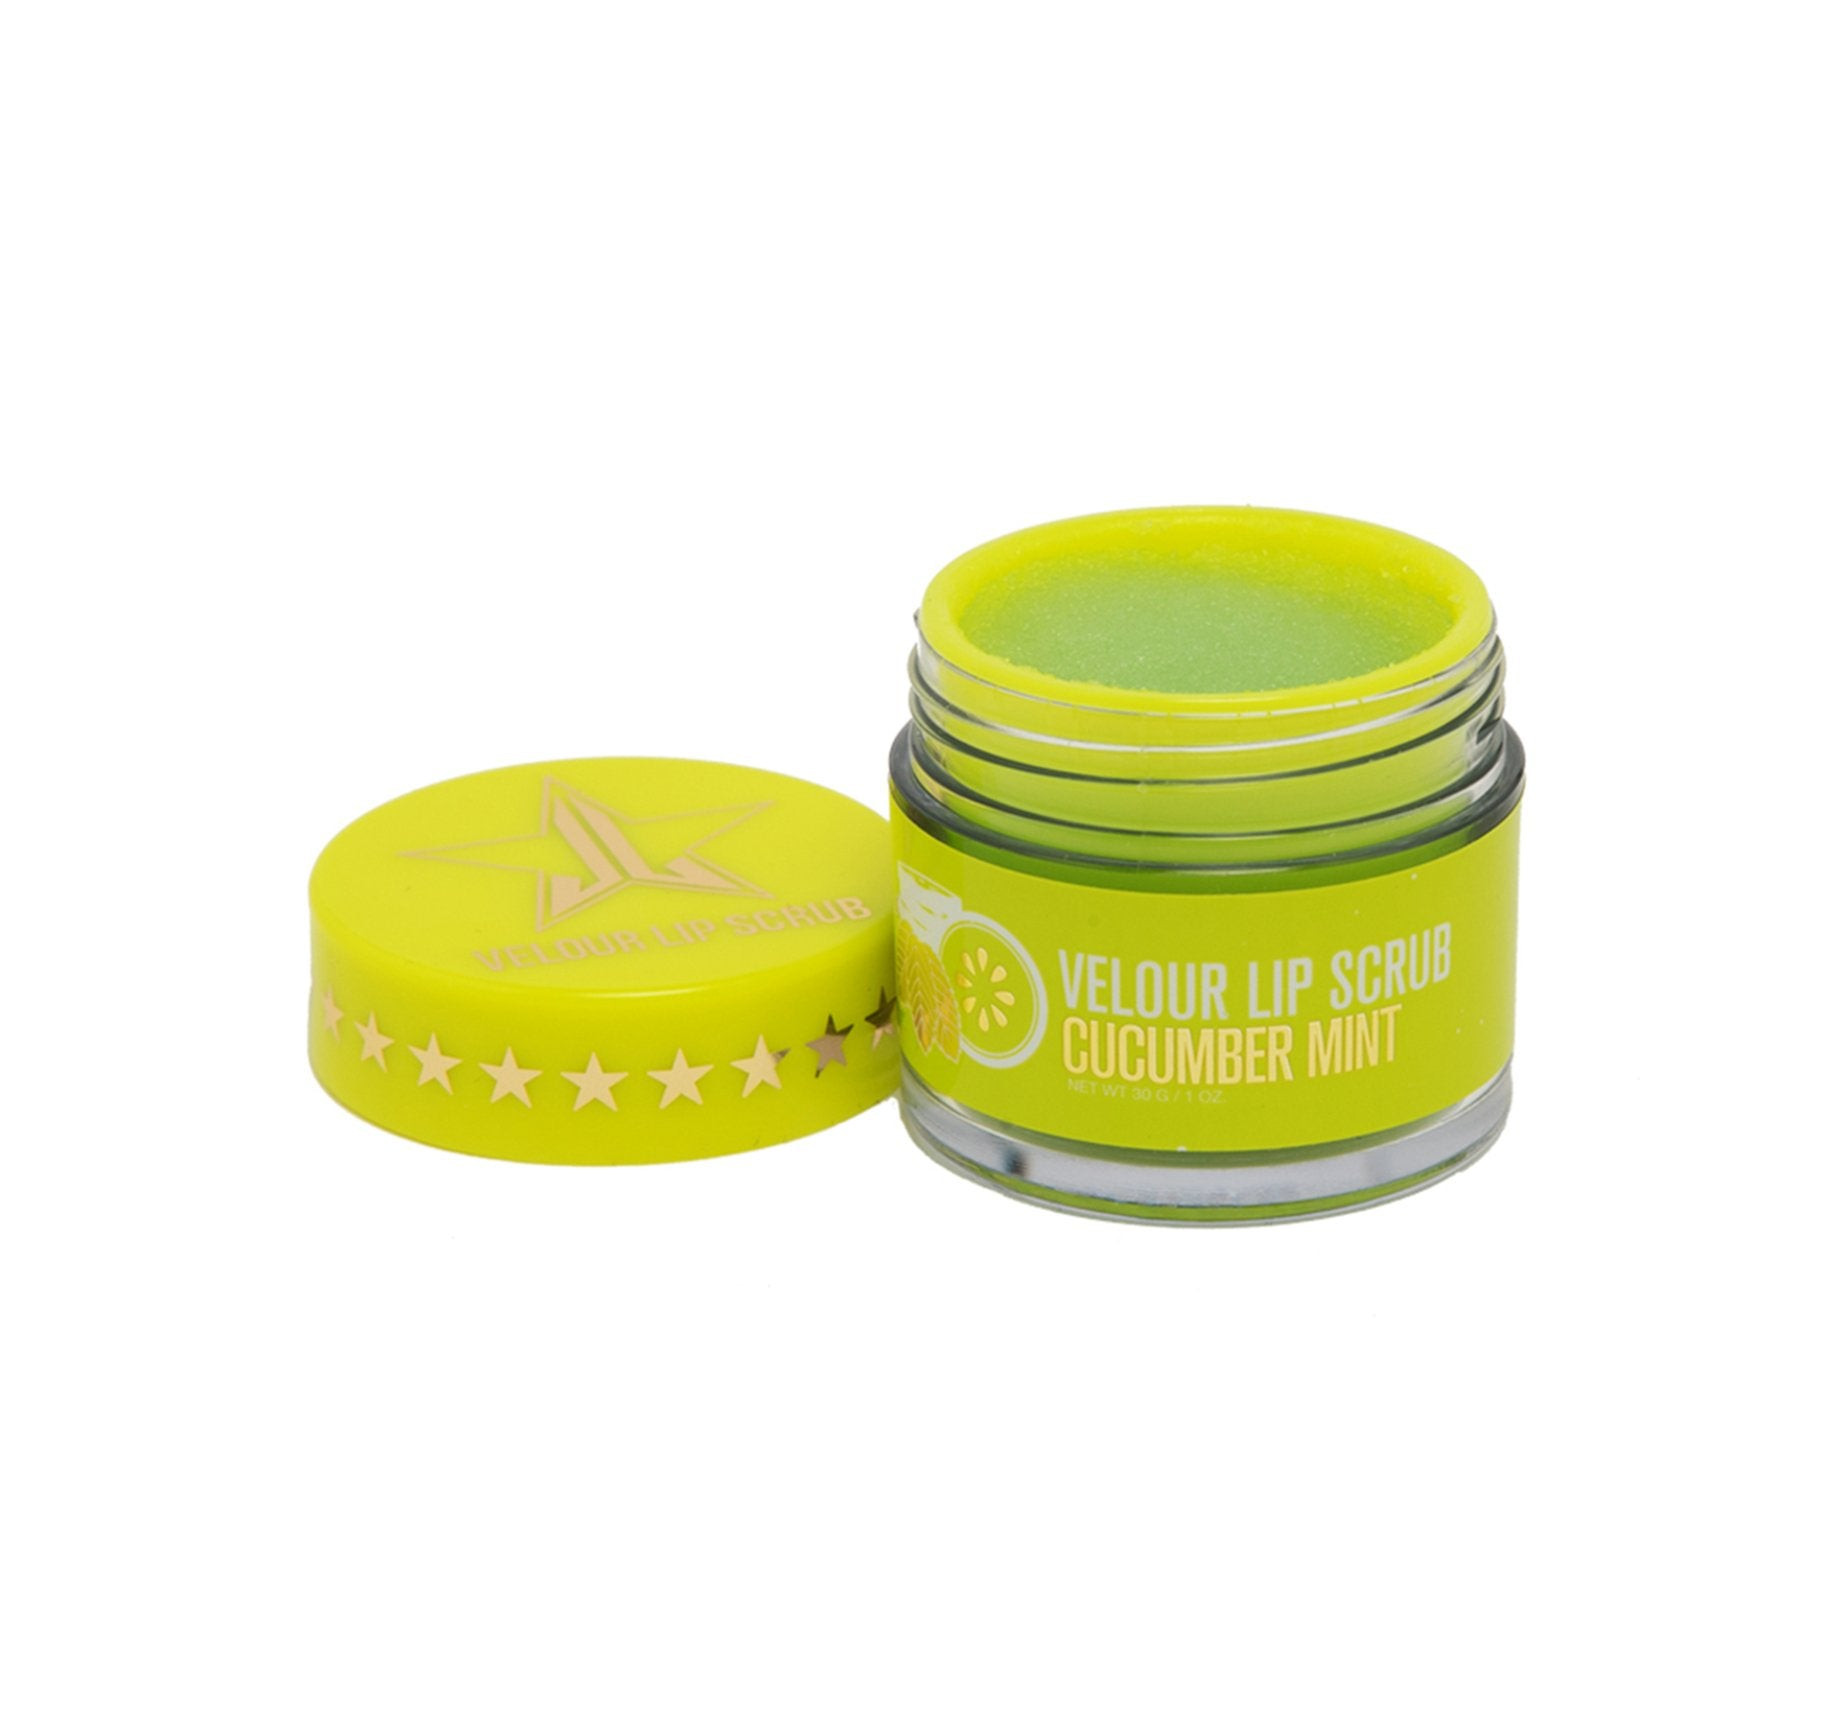 VELOUR LIP SCRUB - CUCUMBER MINT